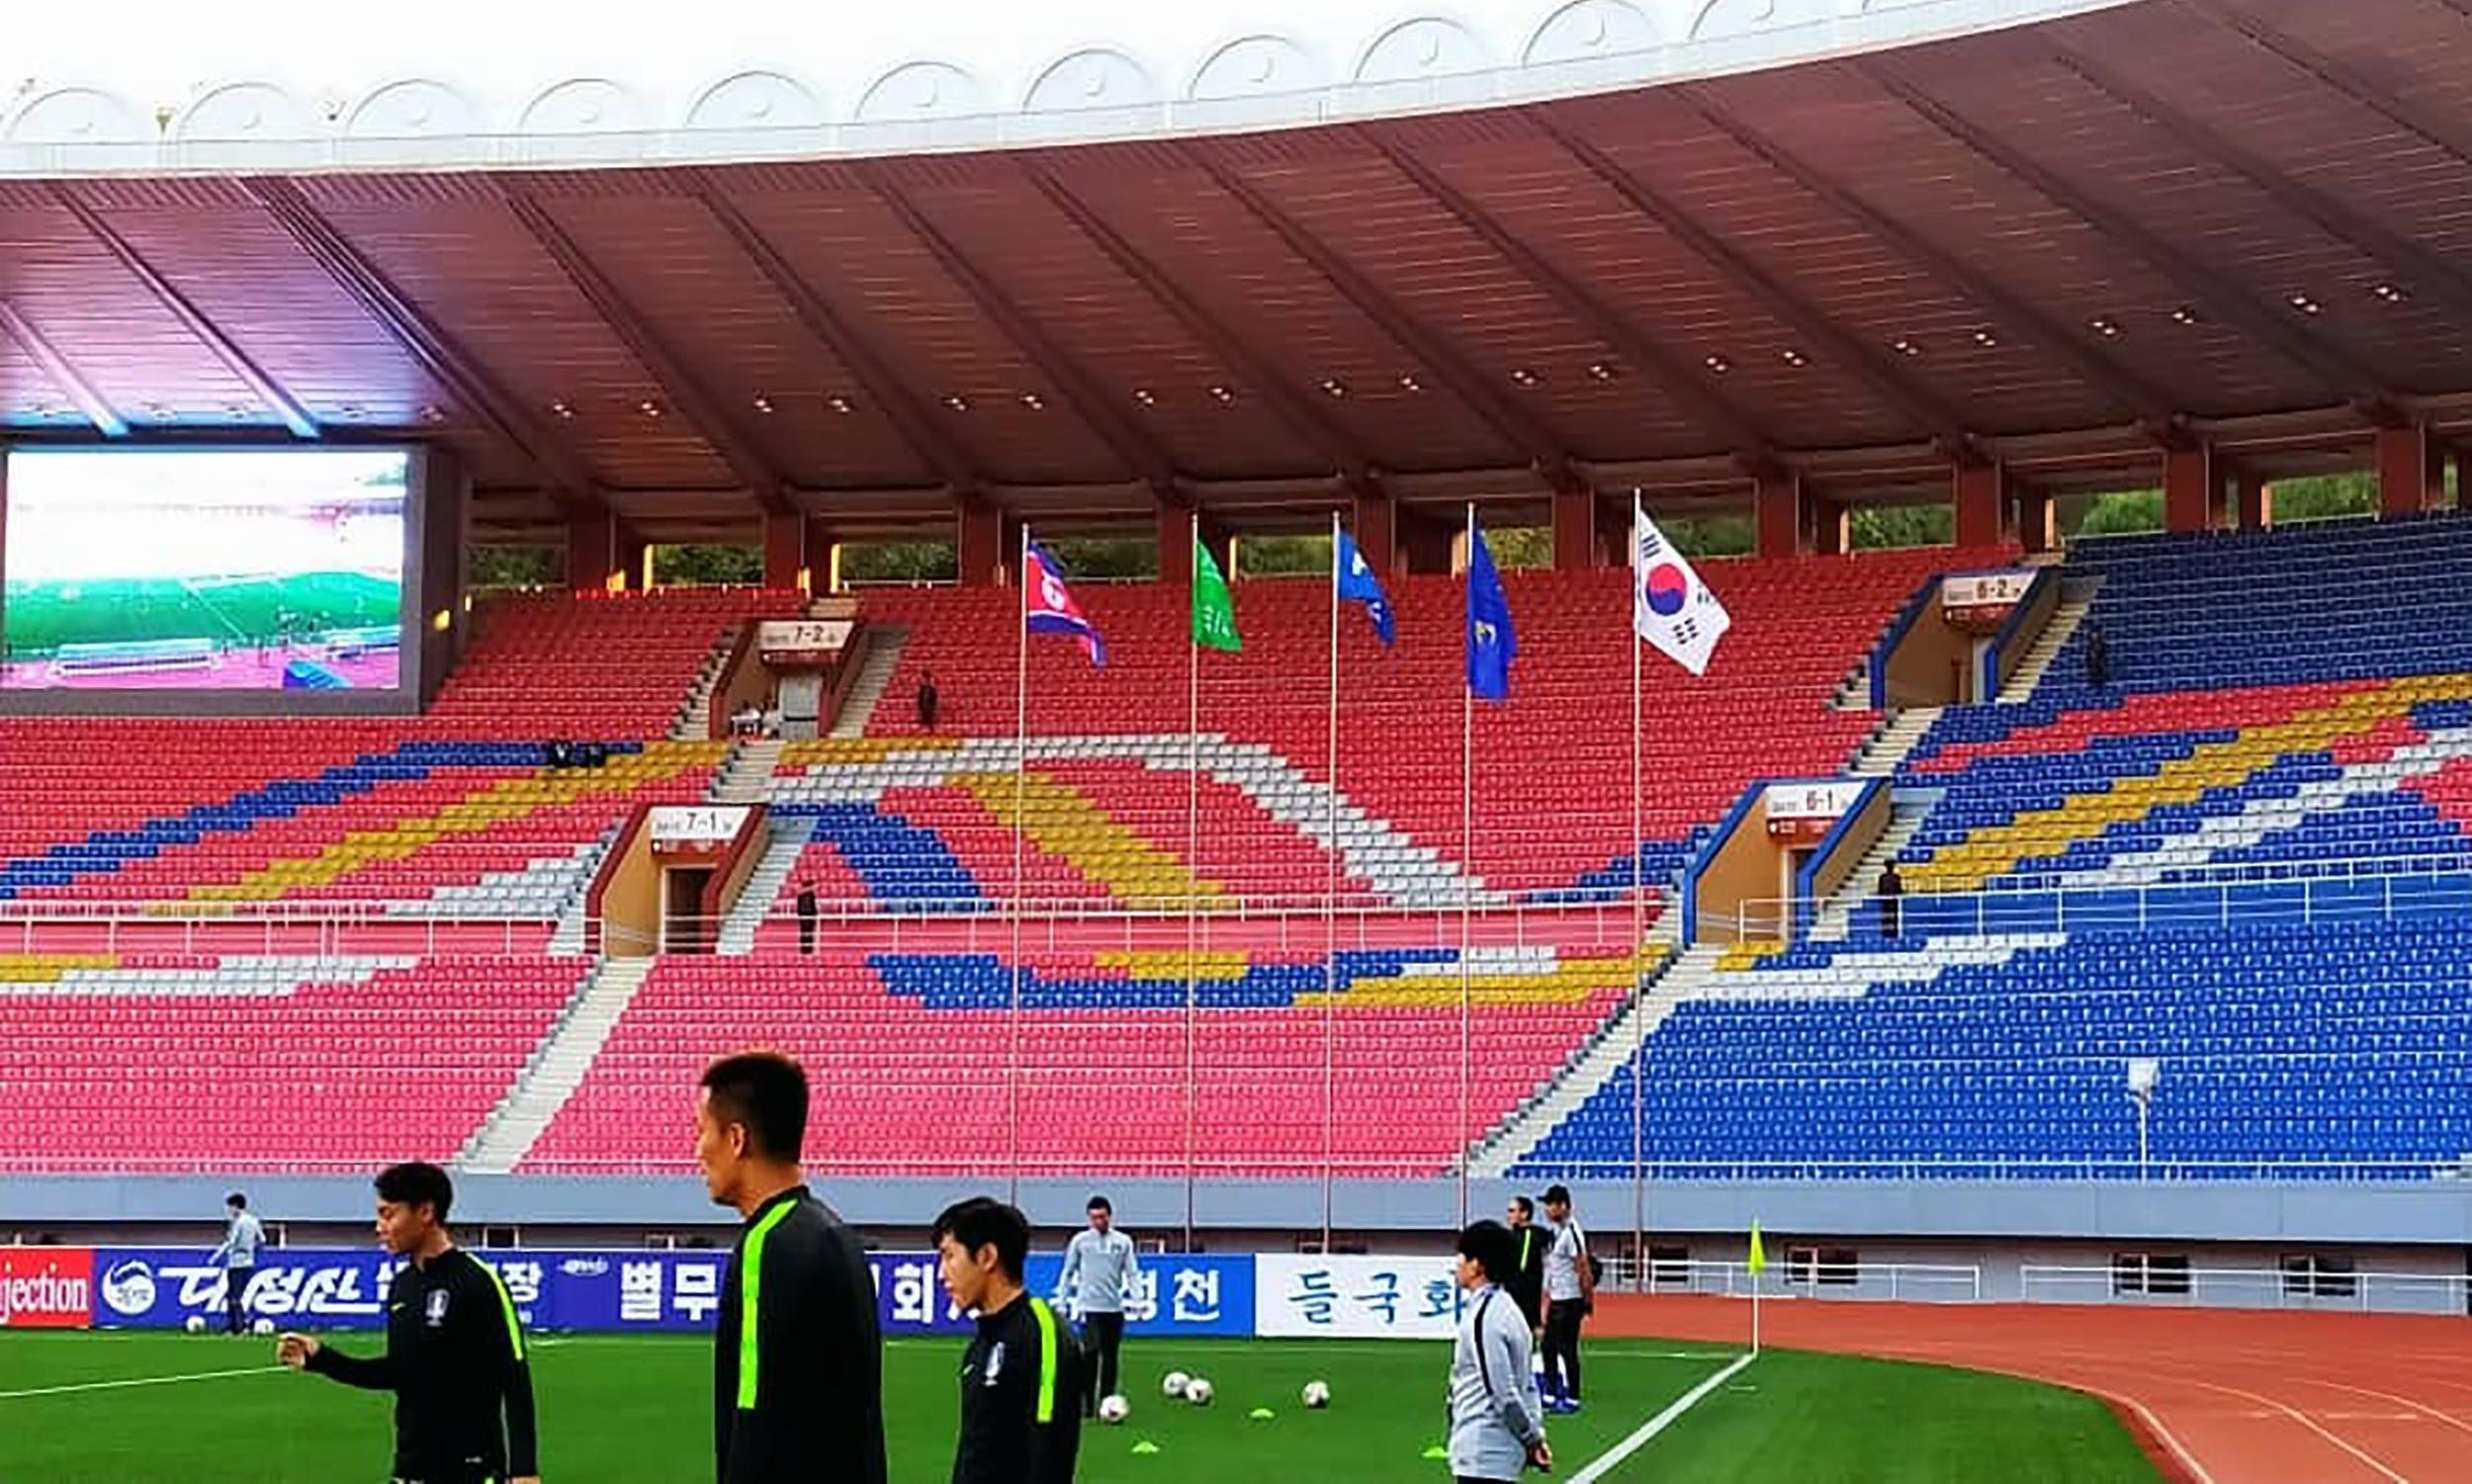 No fans, no media and no goals as Koreas play out World Cup qualifier in empty stadium